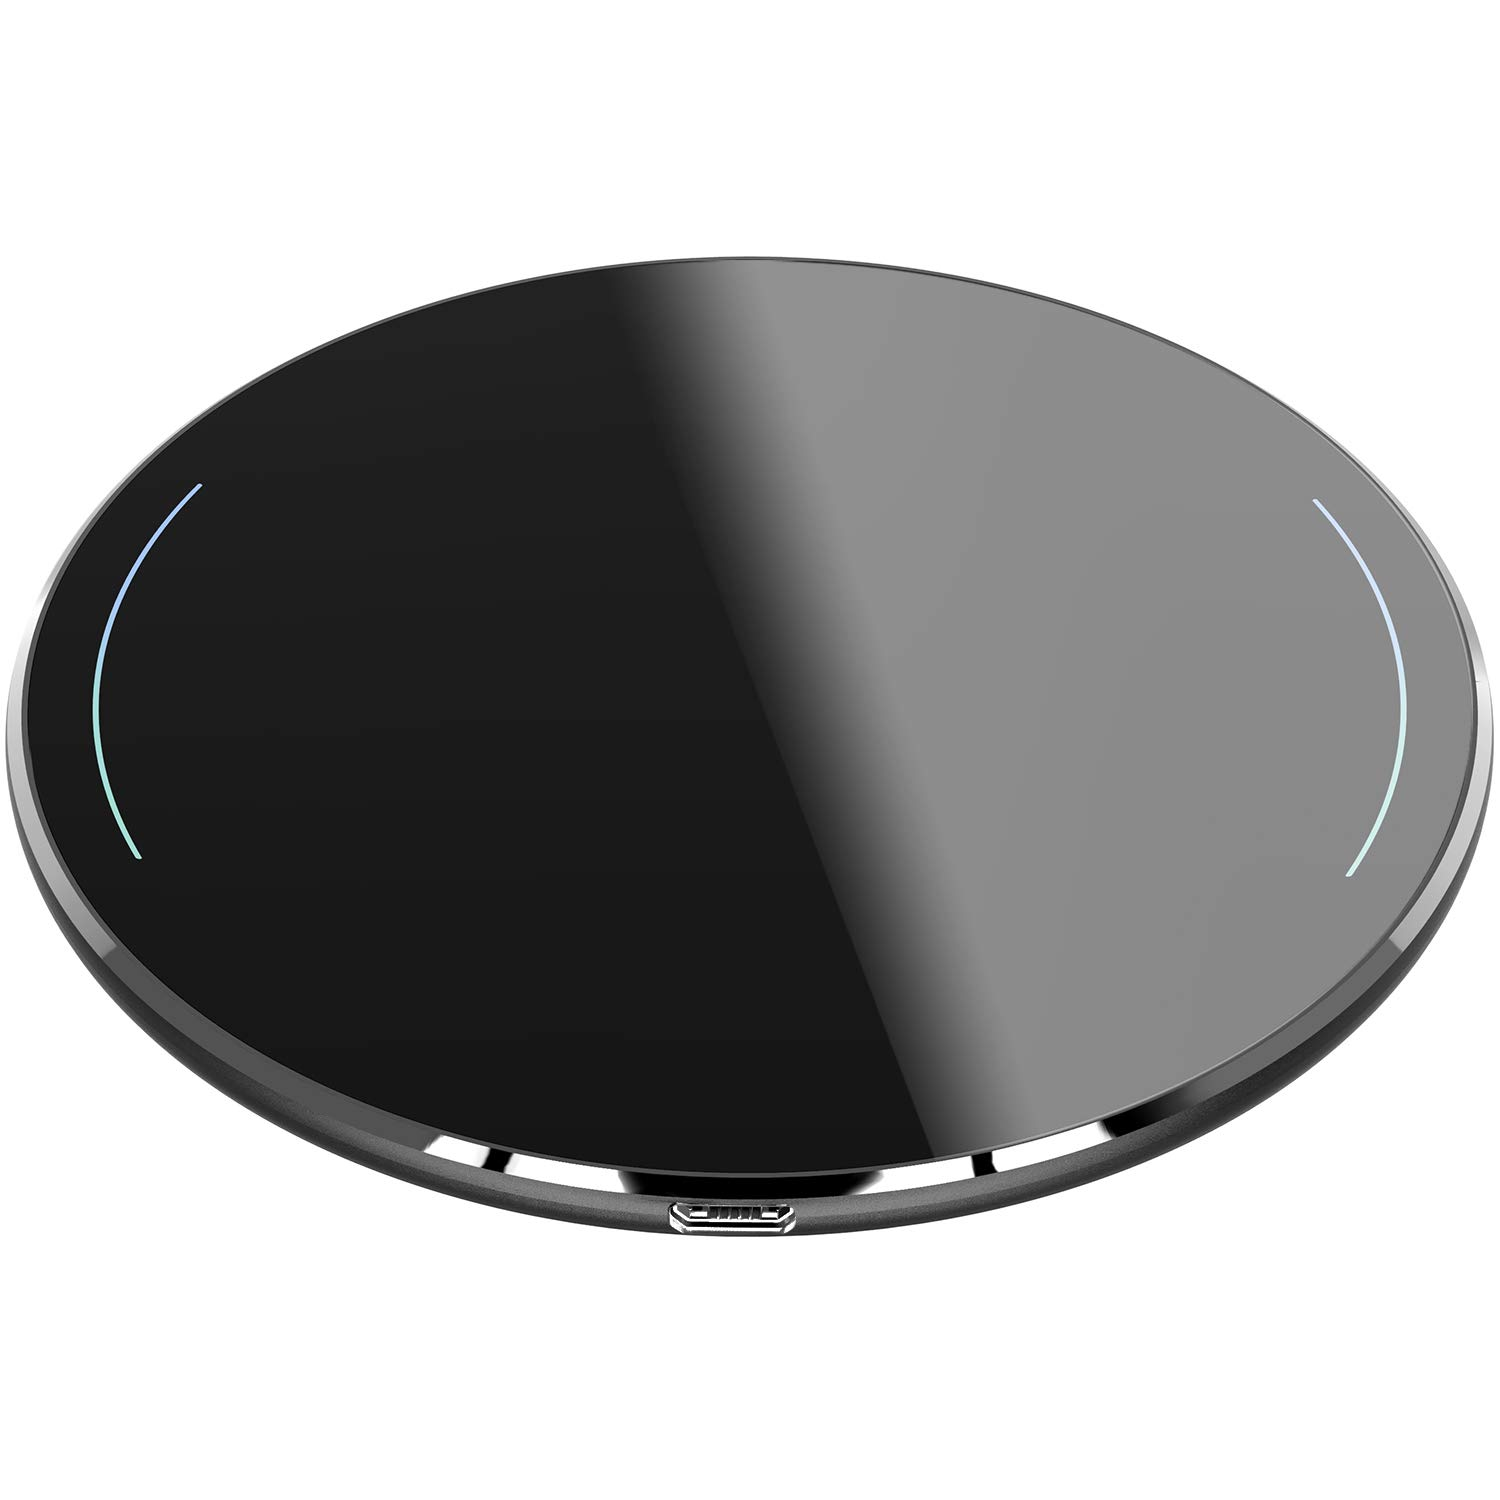 TOZO Wireless Charger Upgraded, Ultra Thin Aviation Aluminum [Sleep-Friendly] FastCharging Pad for iPhone Xs, XR, Xs Max, X, 8 Plus Samsung Galaxy S8-S10+, Note 8 9 [Black] - NO AC Adapter by TOZO